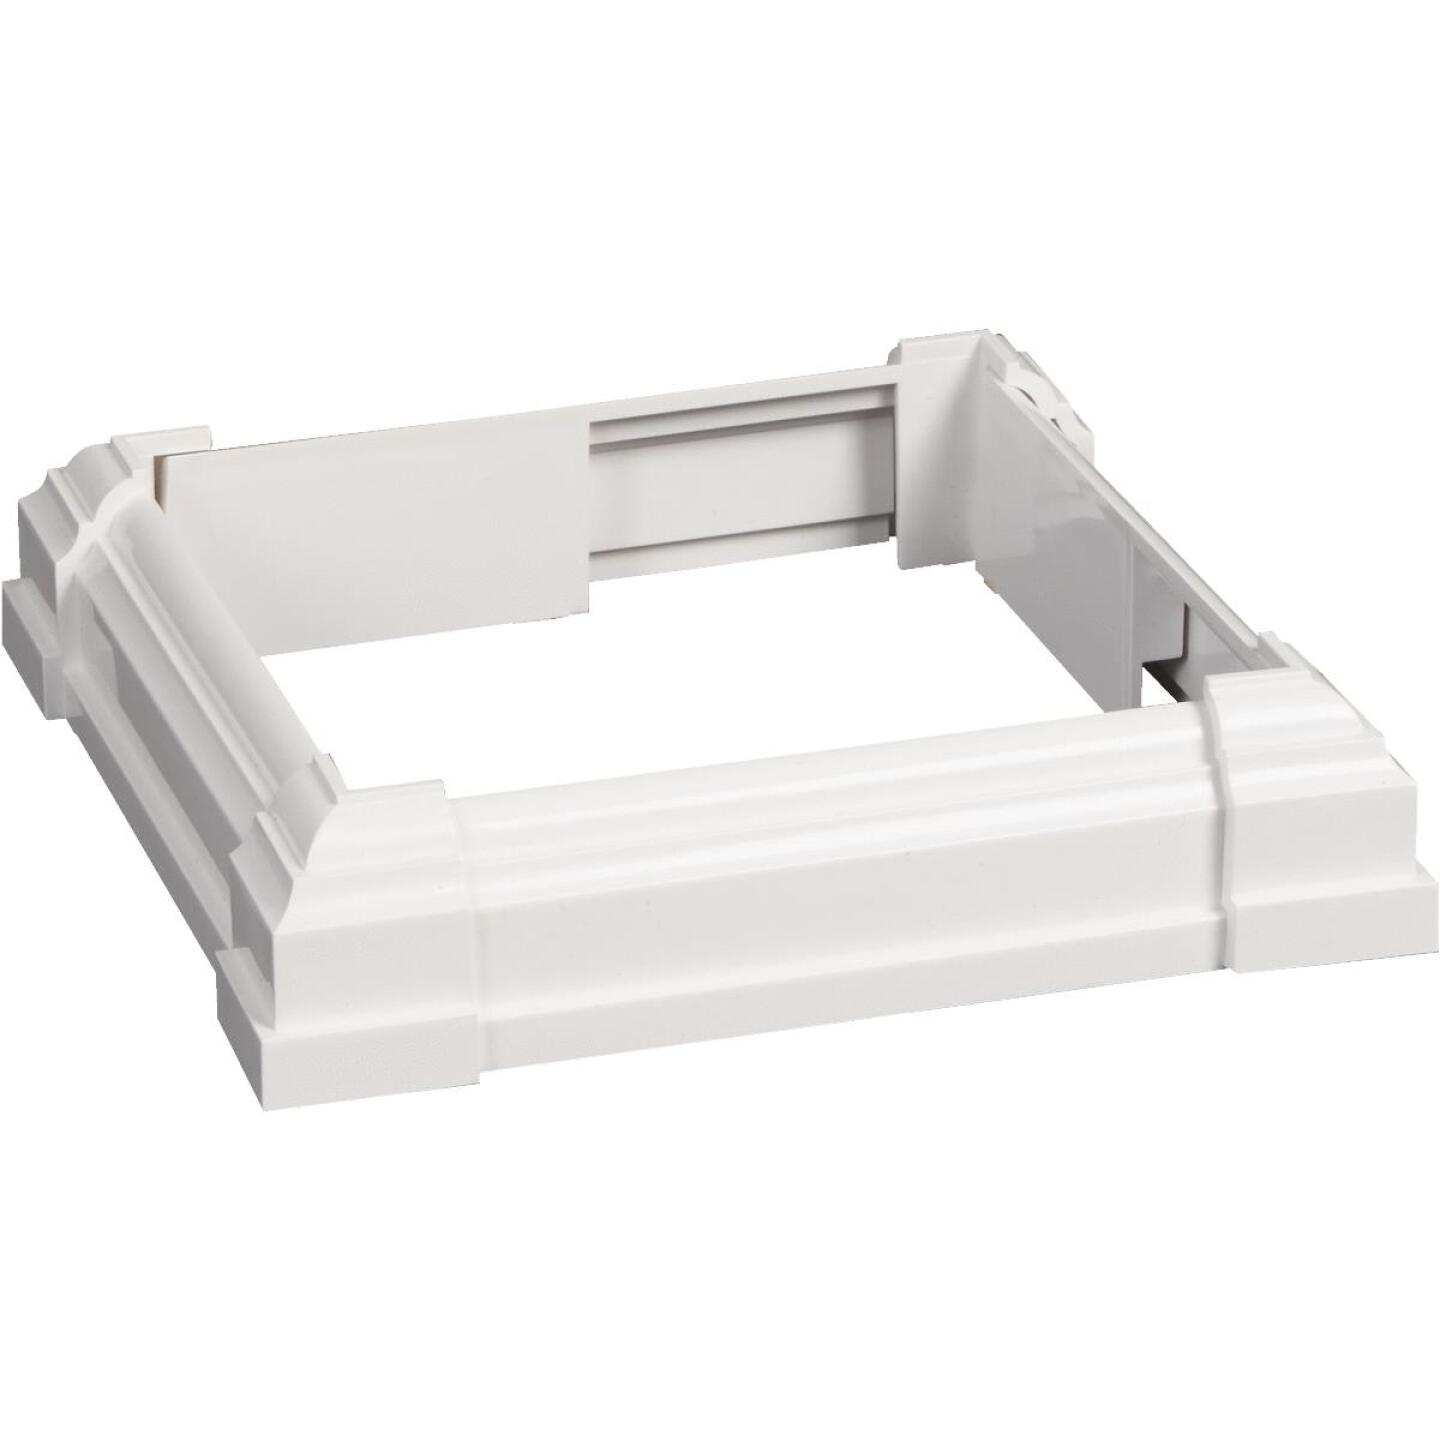 Beechdale 6 In. Vinyl/PVC Post Trim Collar Image 1